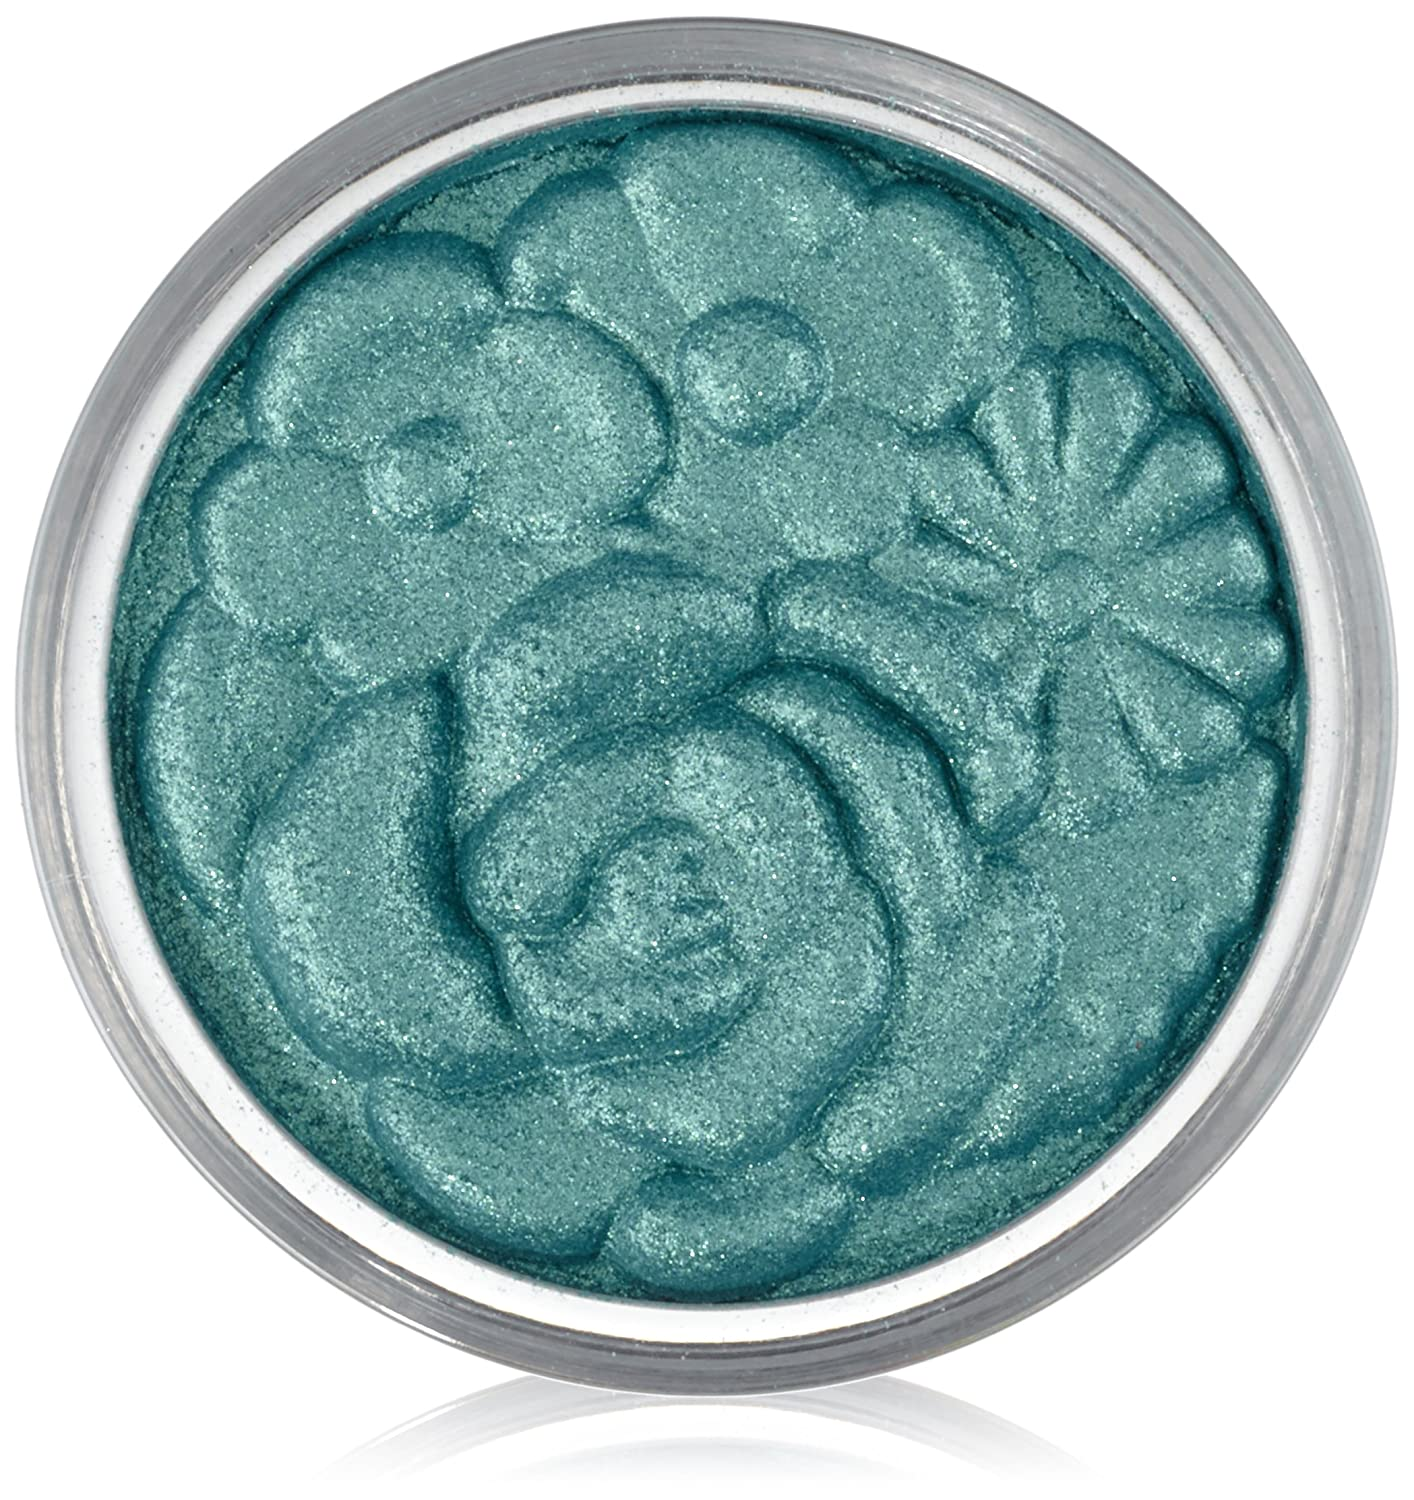 ANNA SUI Eye And Face Color V Velvet Corsage